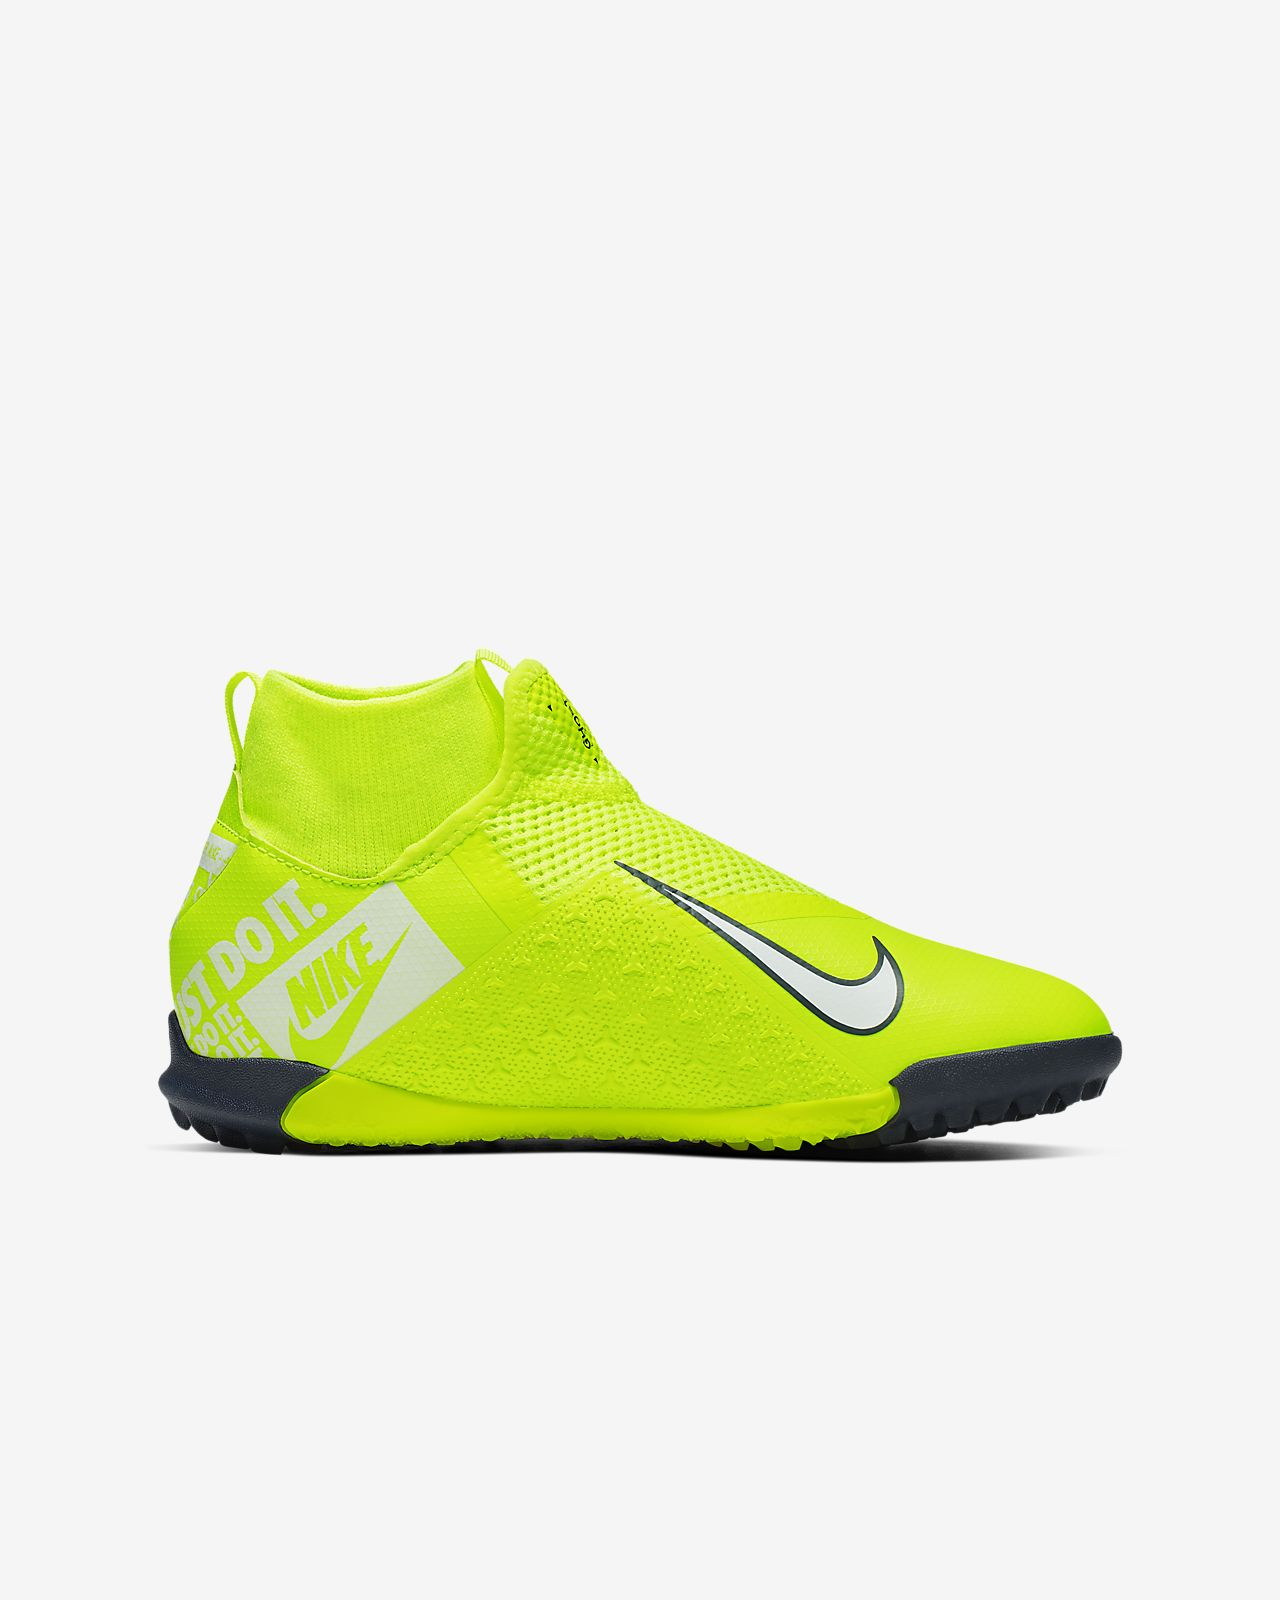 Nike Phantom Vision Academy Dynamic Fit IC Soccer Shoes Men volt white volt